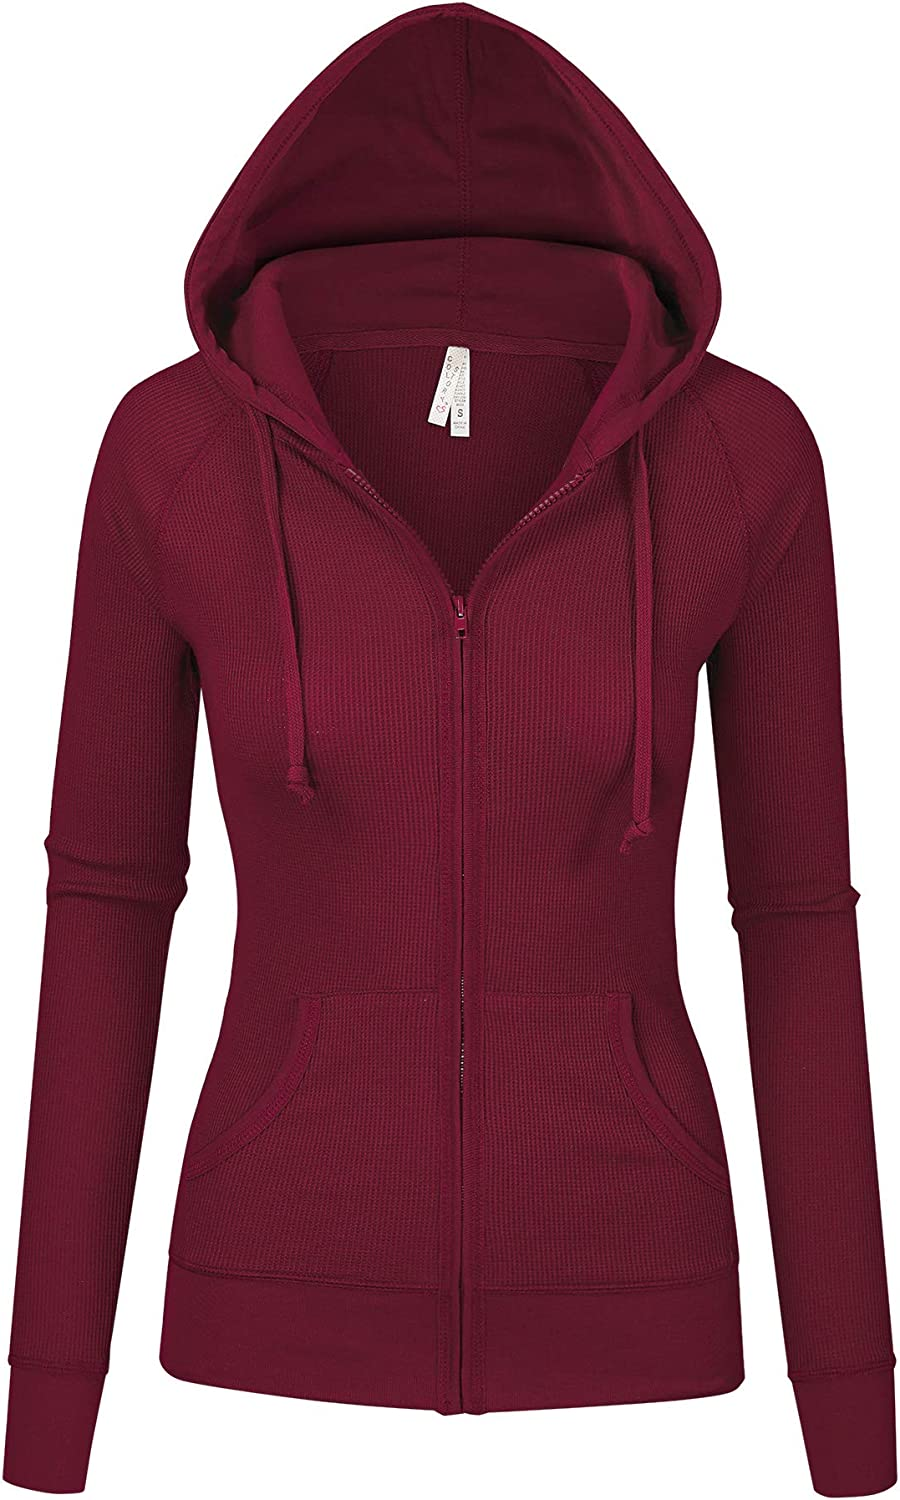 Women's Multi Color Selection Thermal Zip Up Casual Relax Fit Hoodie Jacket